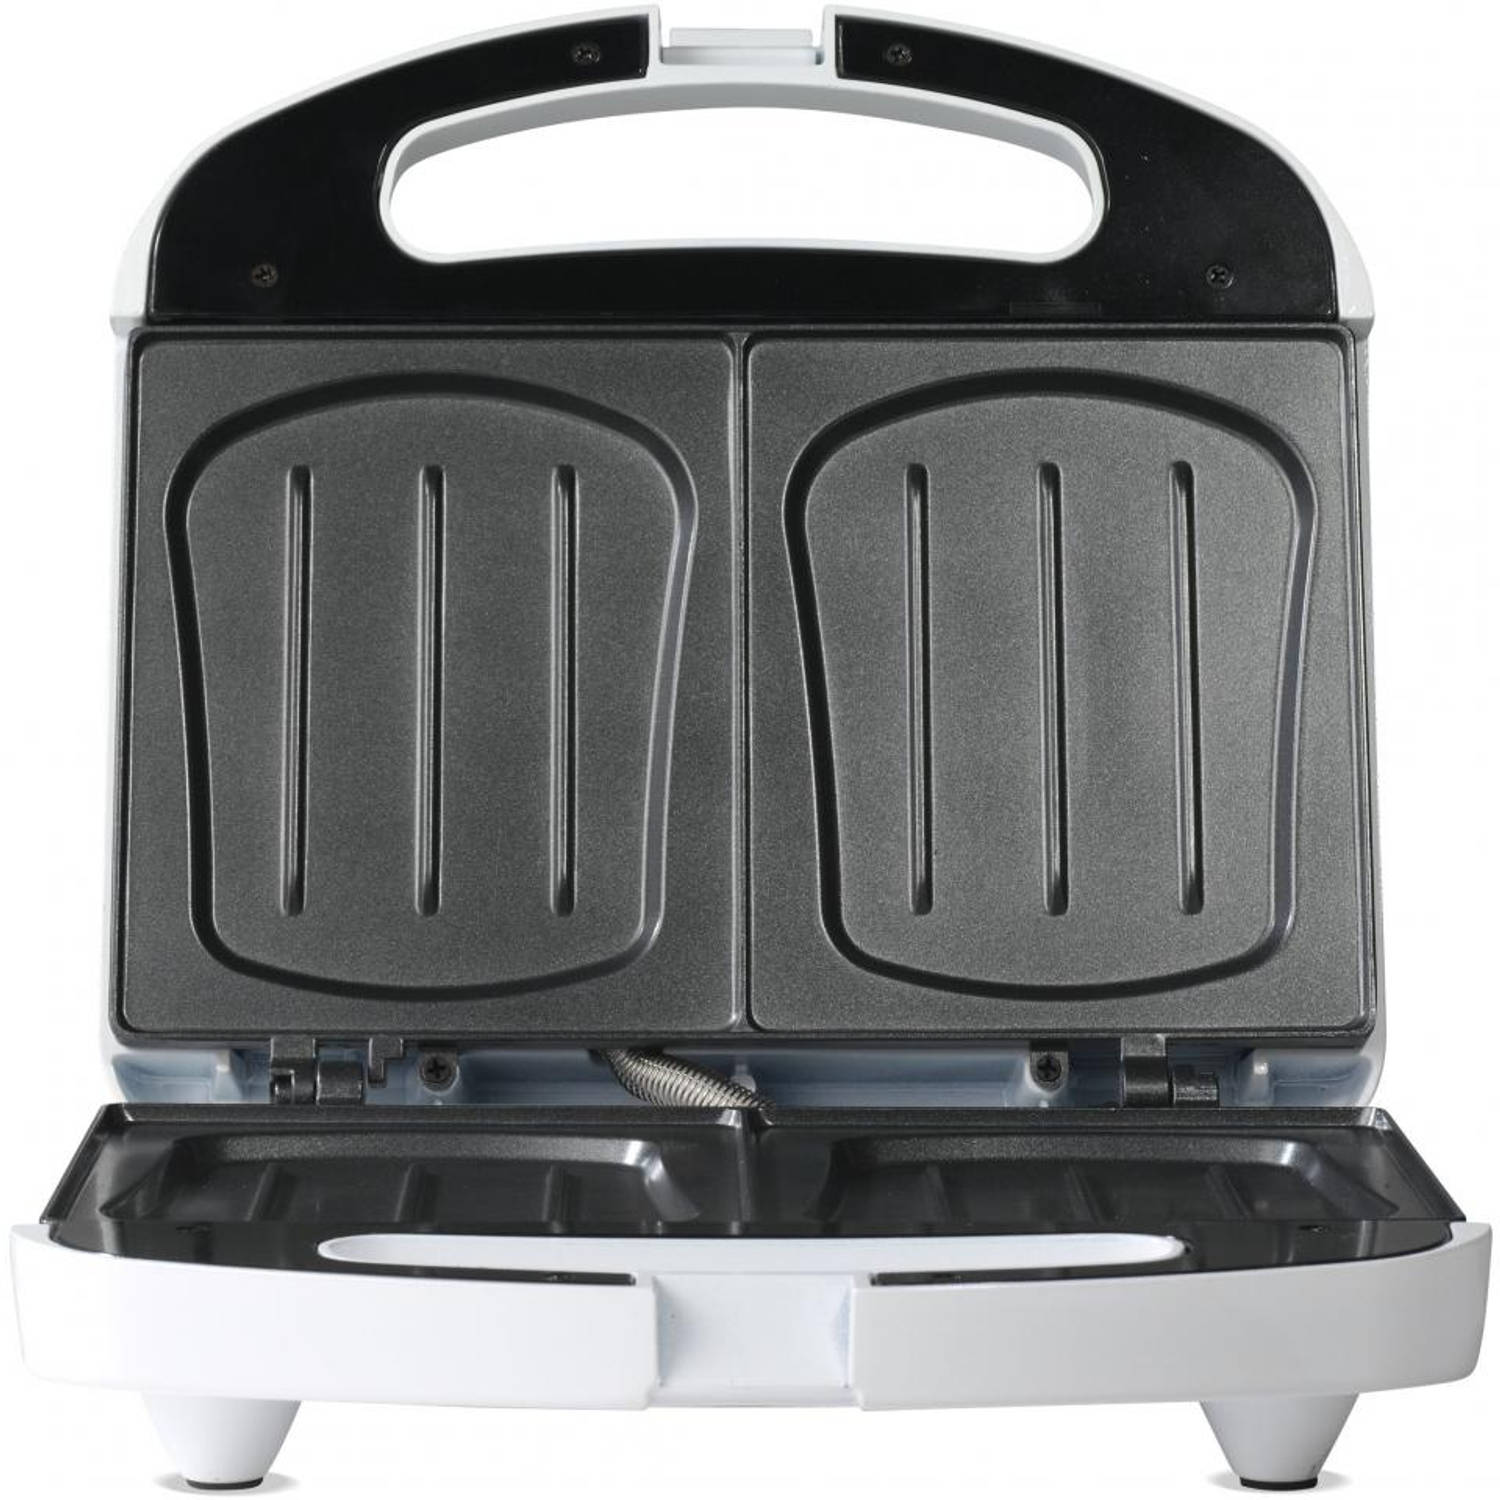 Bourgini Sandwich Maker XXL 2P 12.5000.00.00